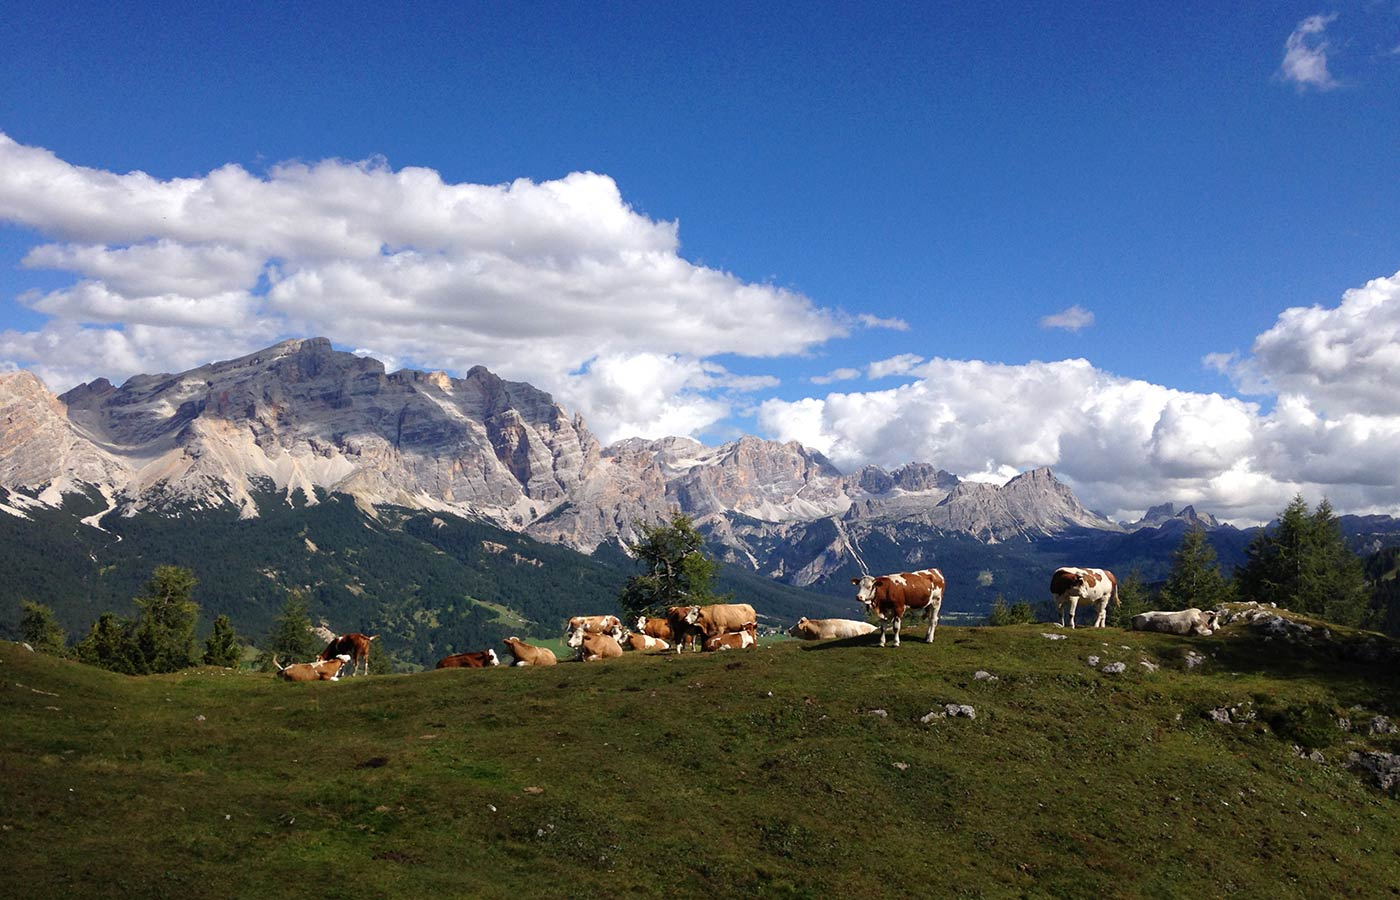 Coes on alpine pastures with Dolomites in the background on a sunny day